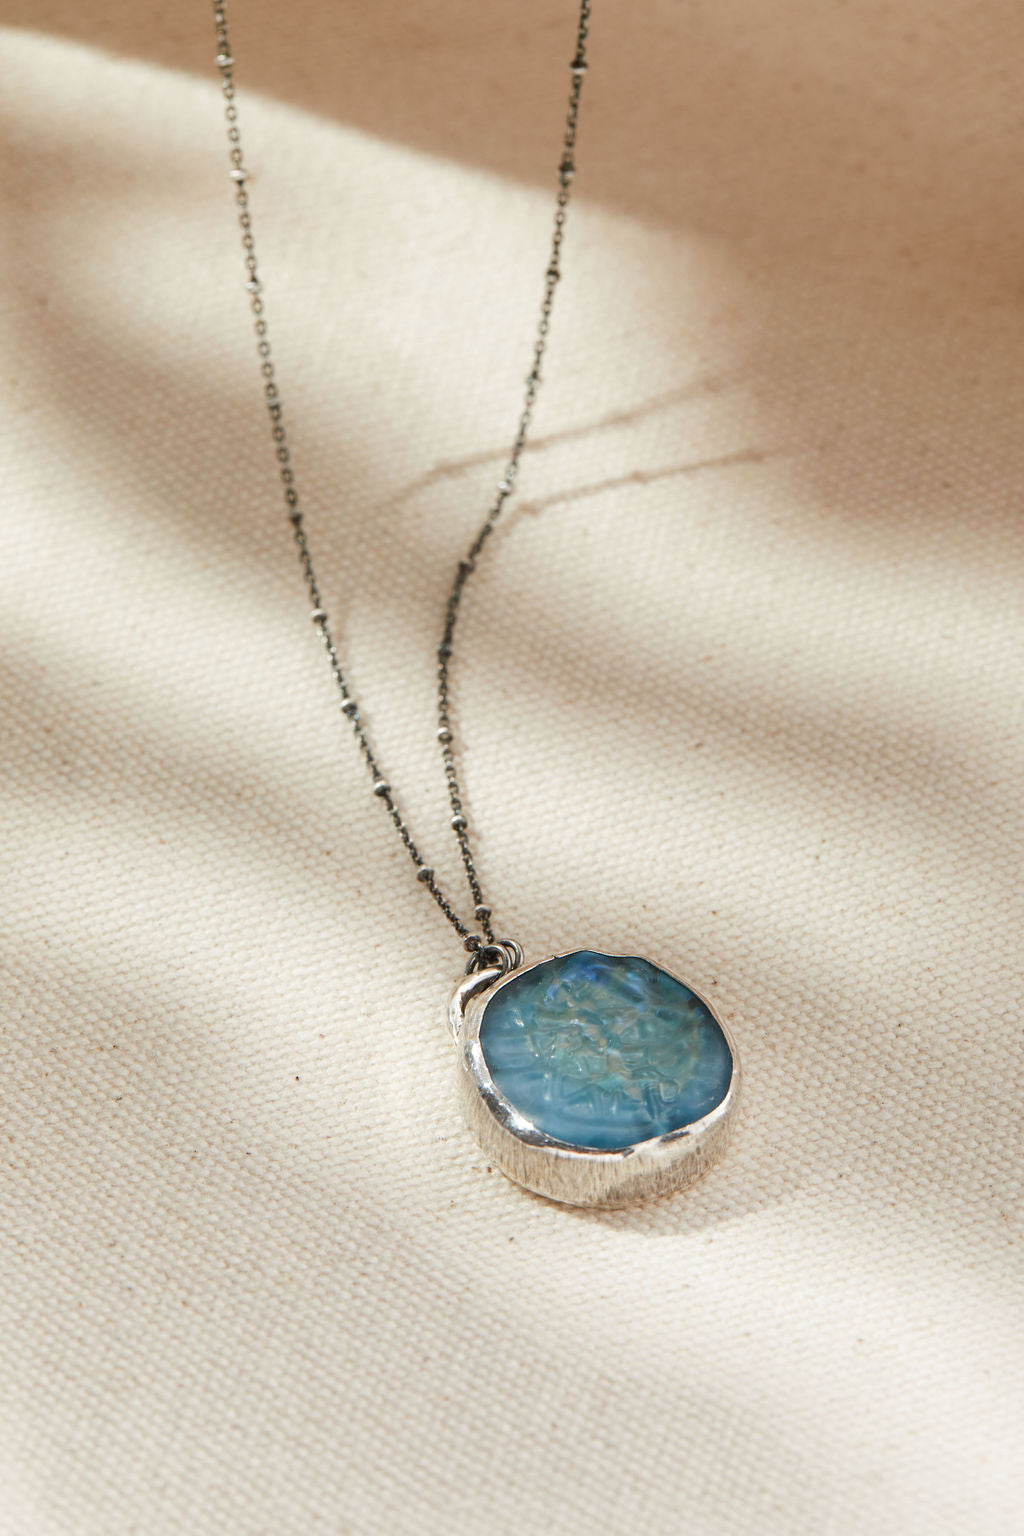 Capri Blue Opal Pendant Necklace - Sterling silver, lamp work glass